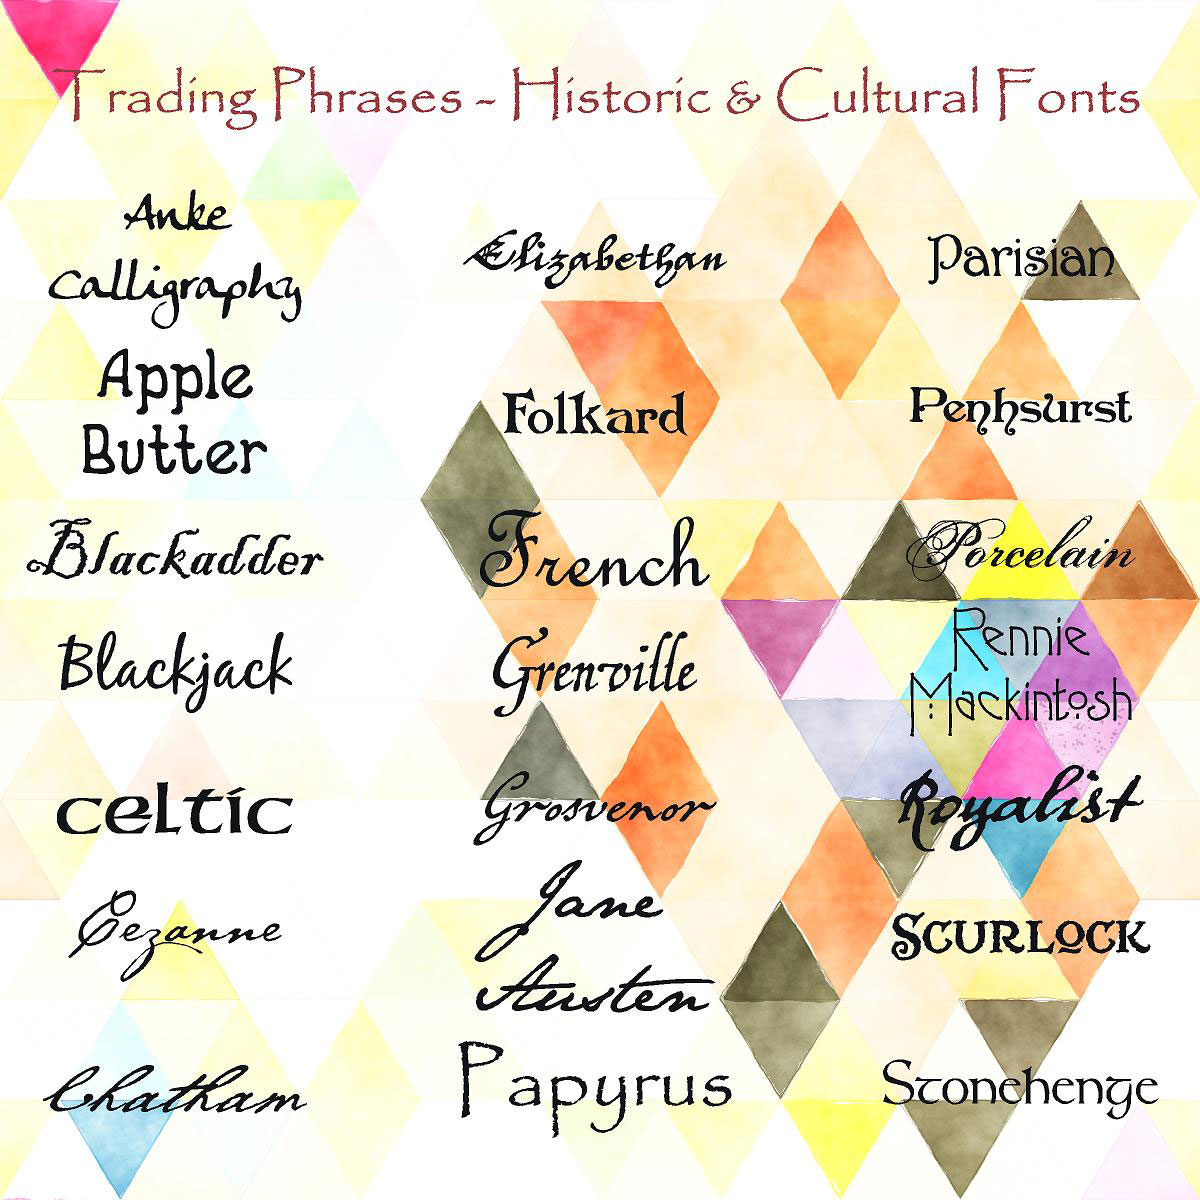 Trading Phrases Historic & Cultural Fonts